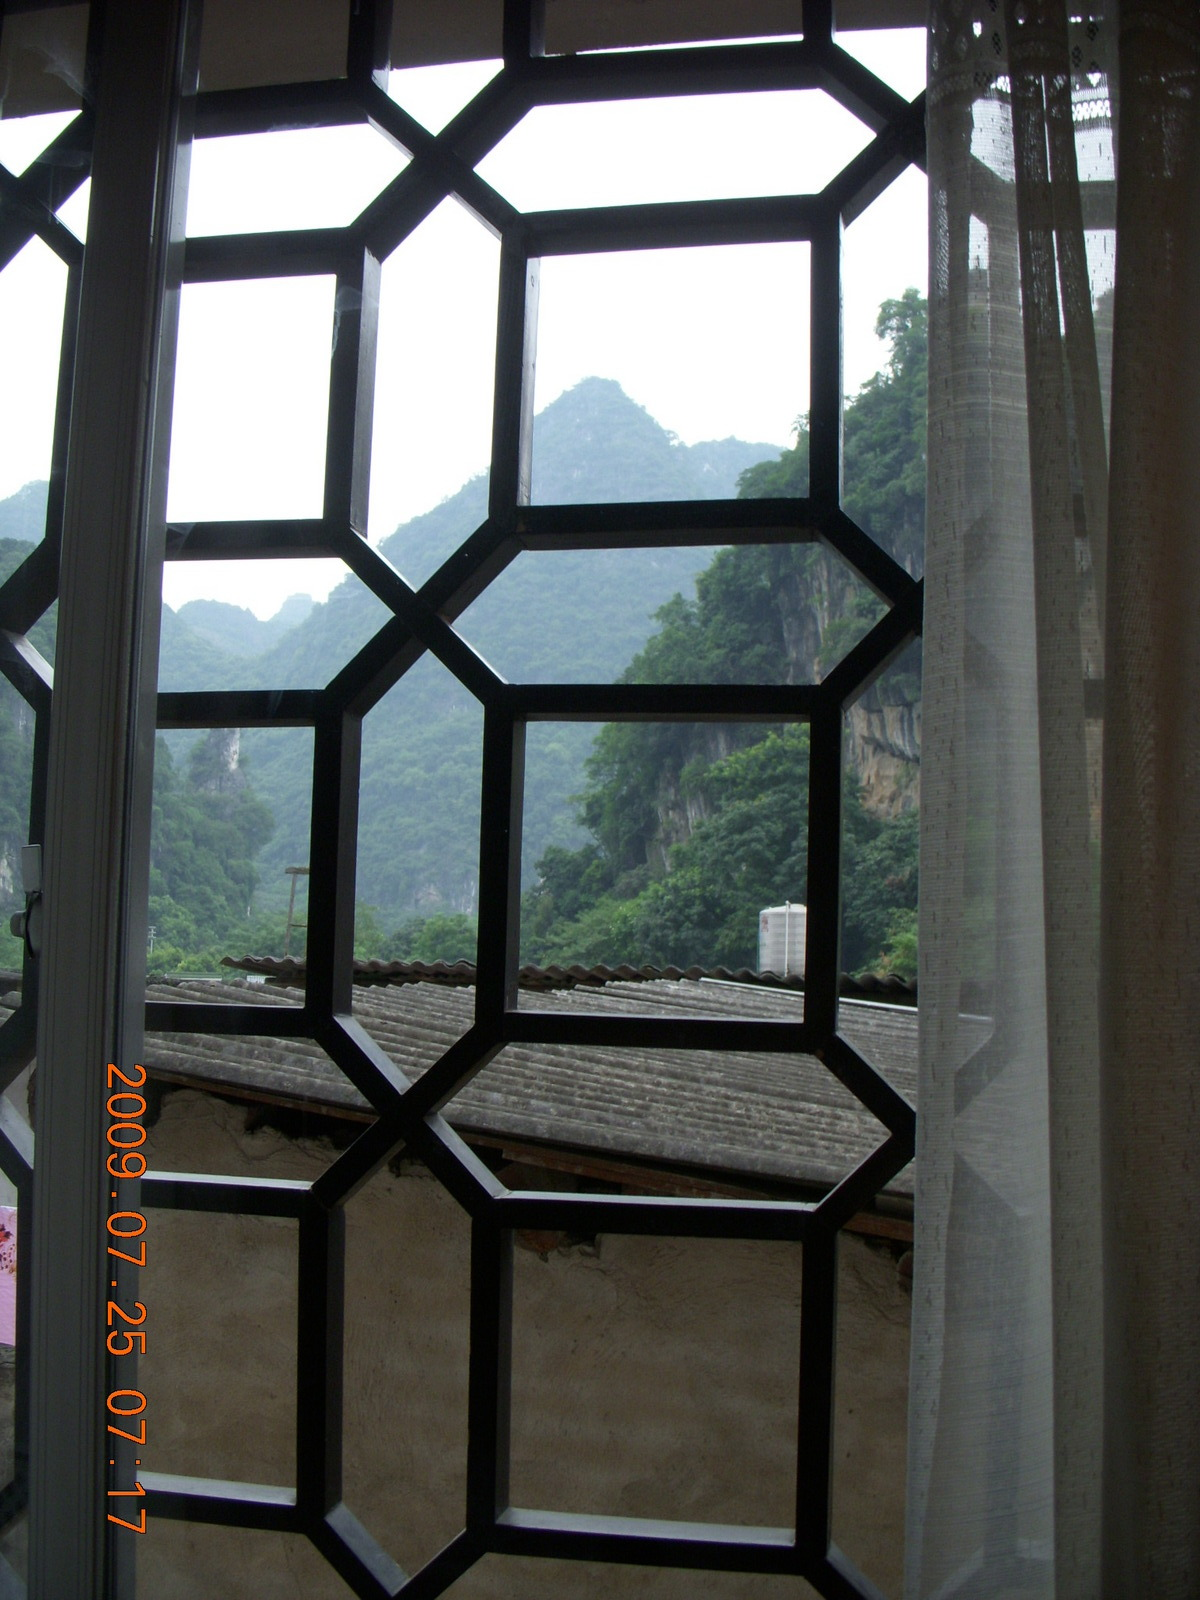 China eclipse - Yangshuo hotel view